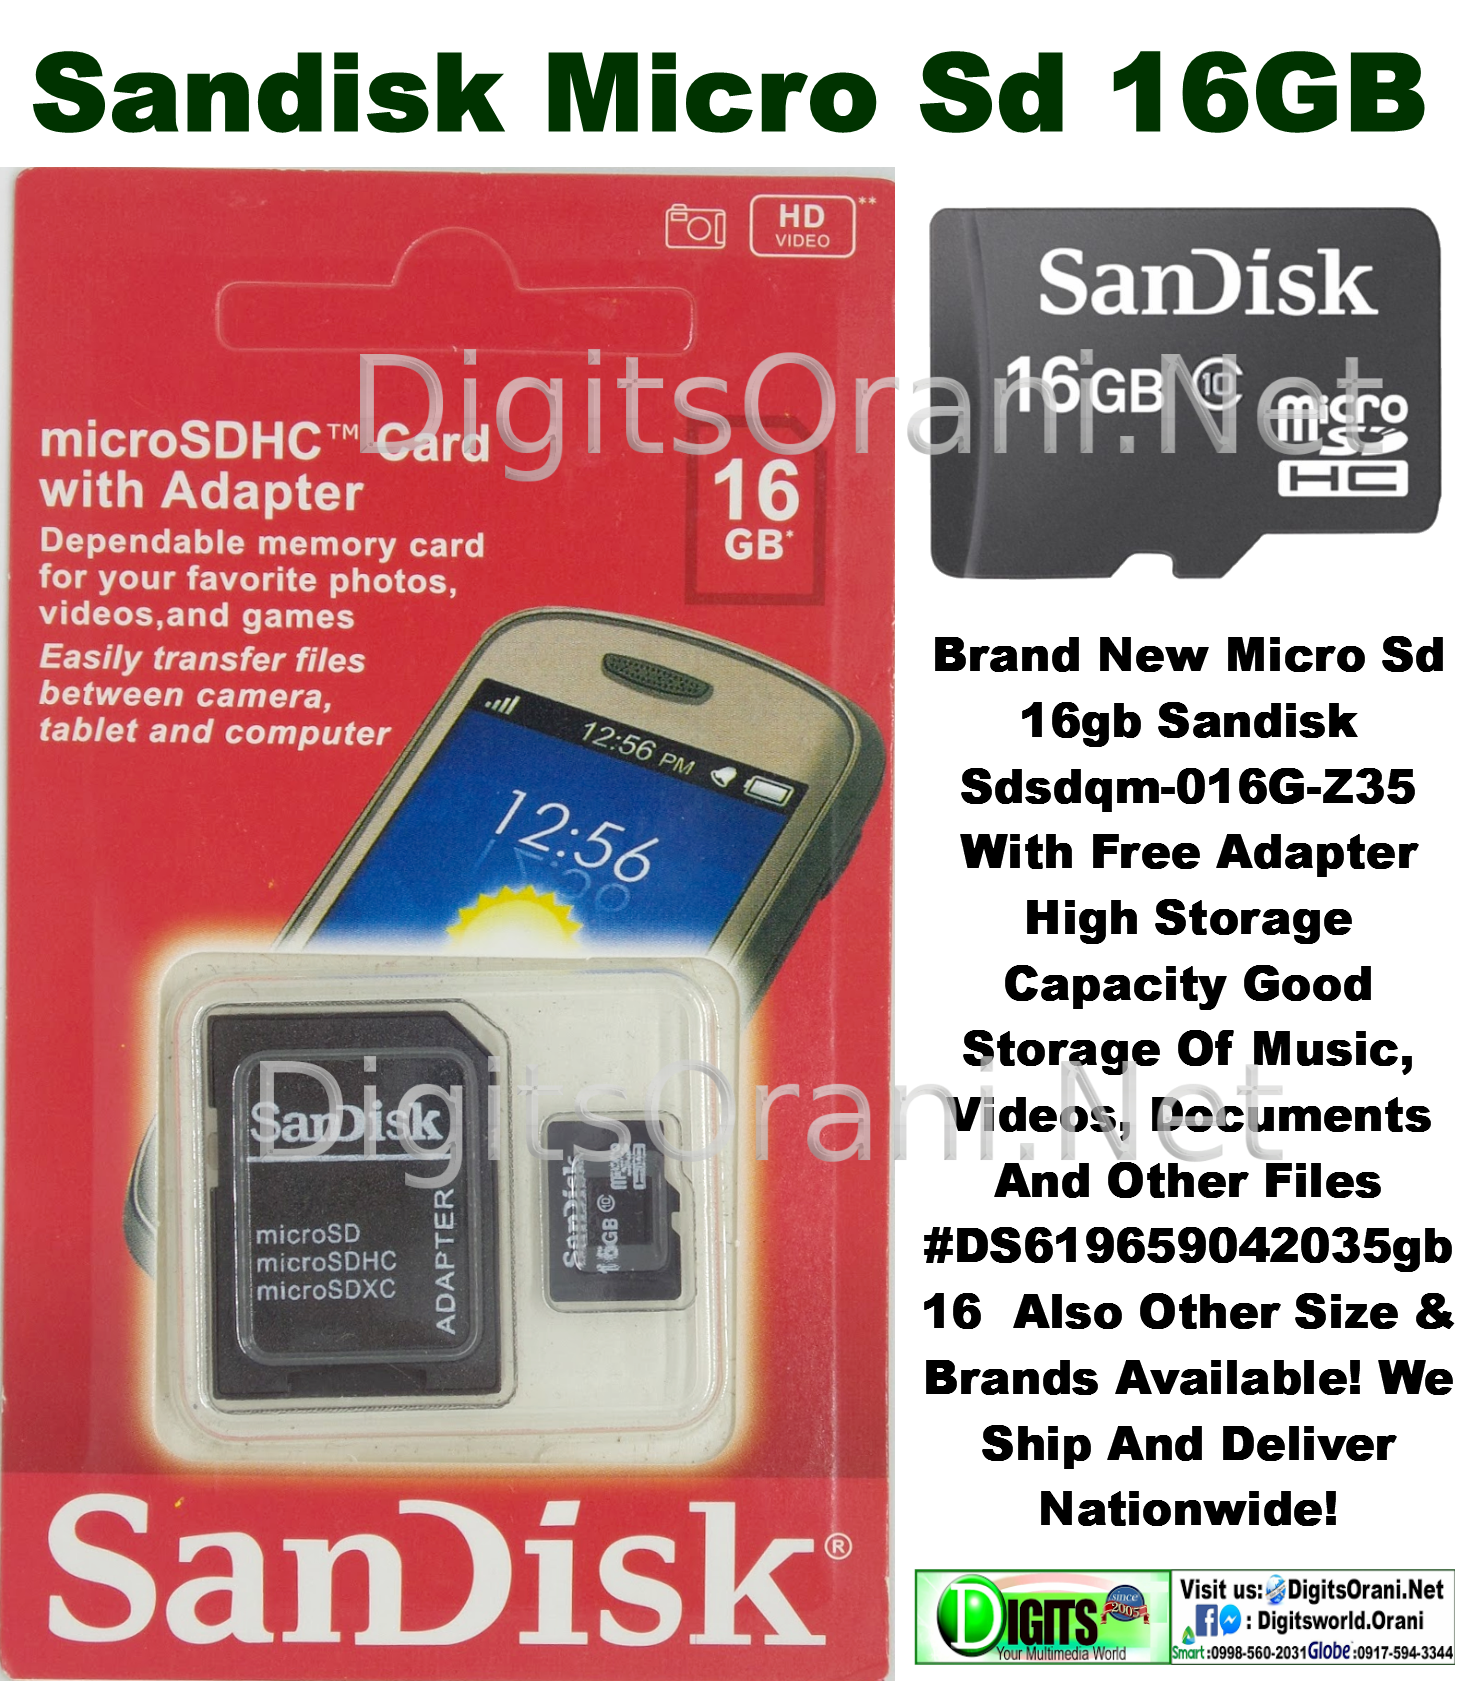 Microsd 16gb Sandisk Sdsdqm 016g Z35 With Free Adapter High Storage 4gb Touch To Zoom